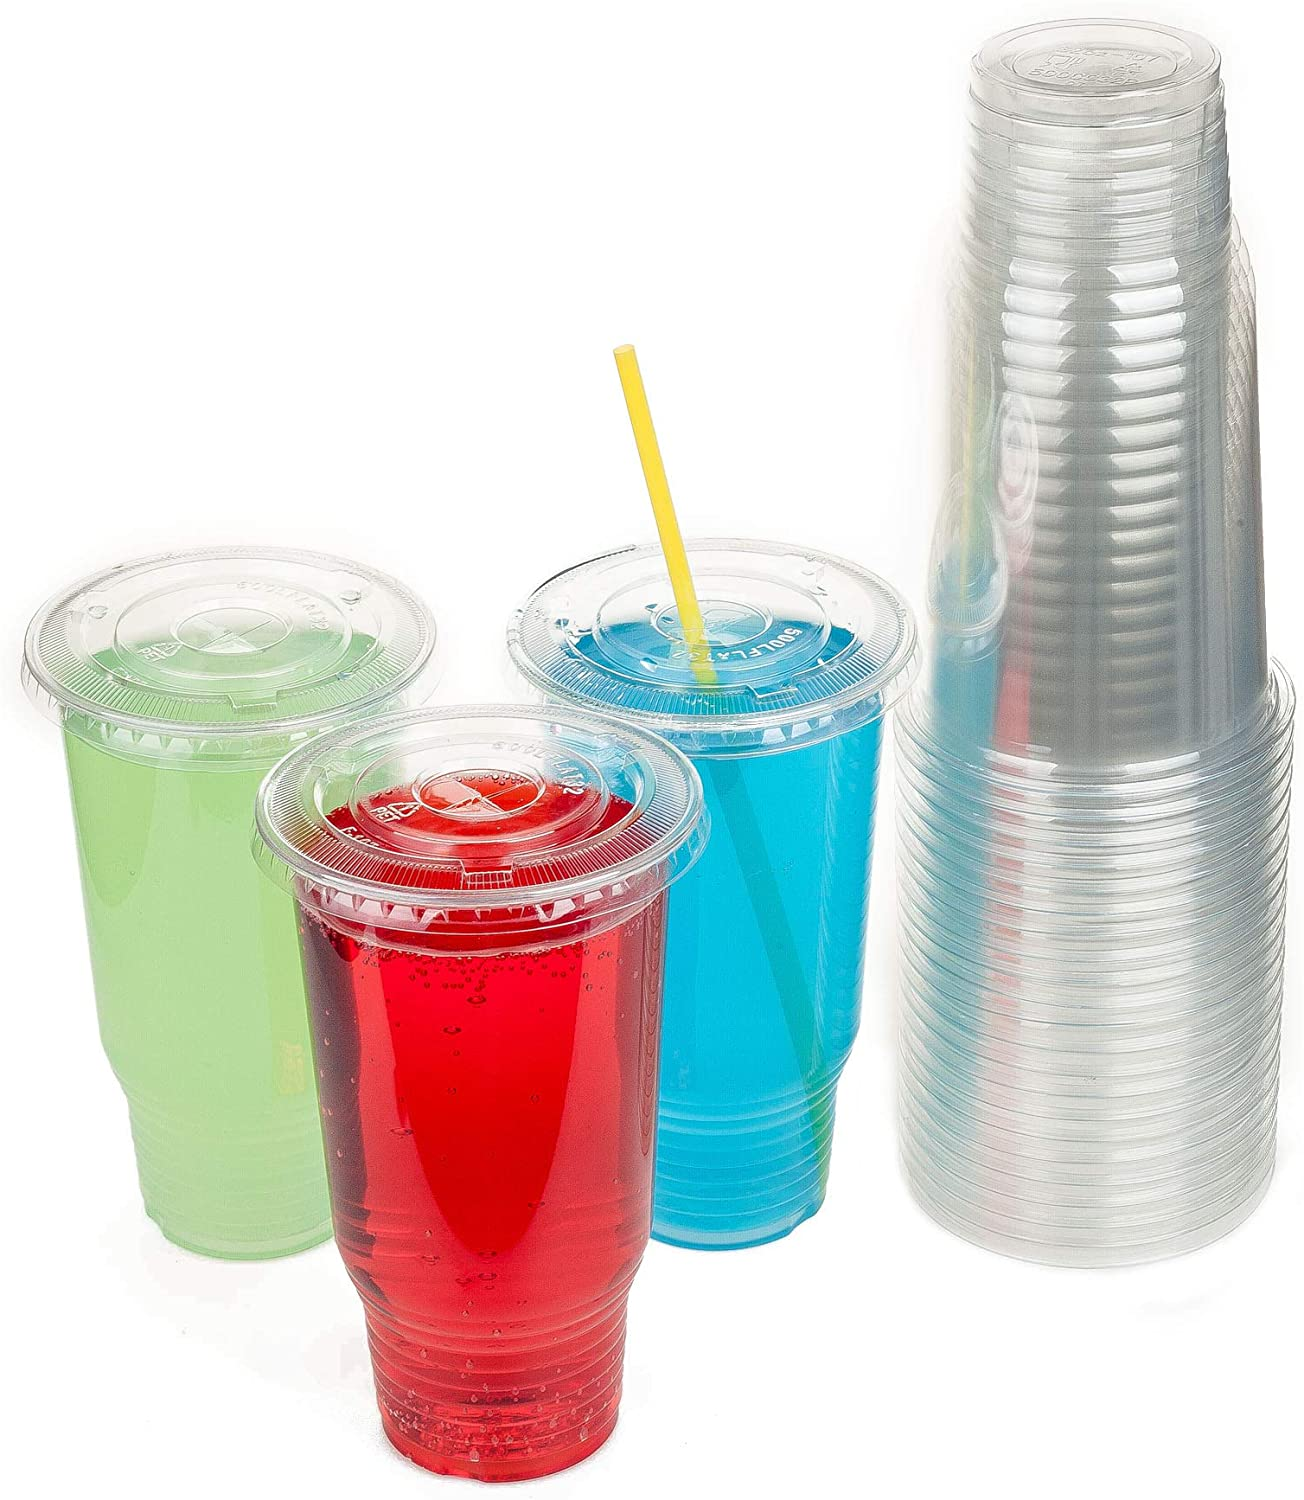 GOLDEN APPLE Cup series, 32oz Clear Plastic cups with Flid lids with X hole 25sets